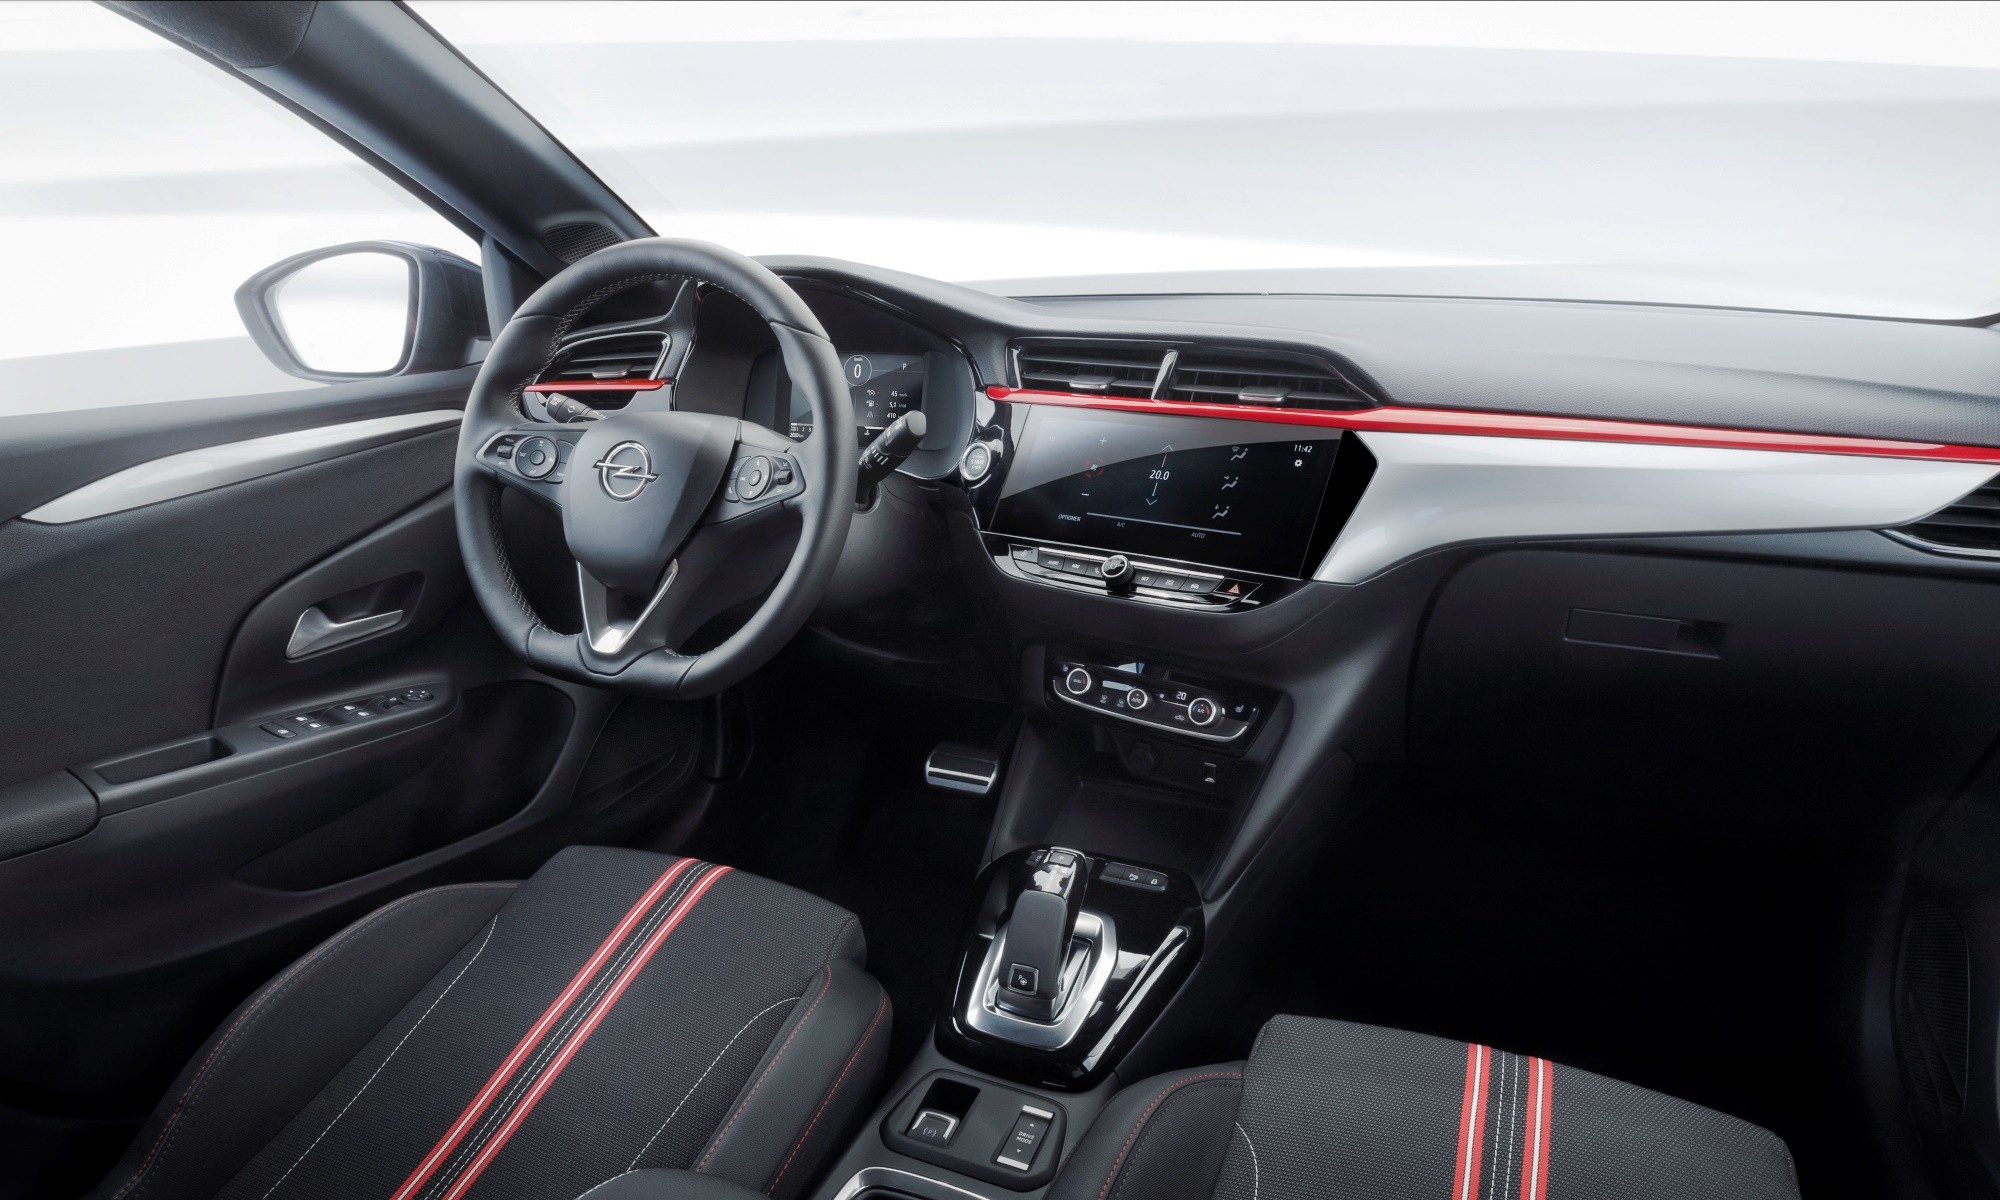 New Opel Corsa interior